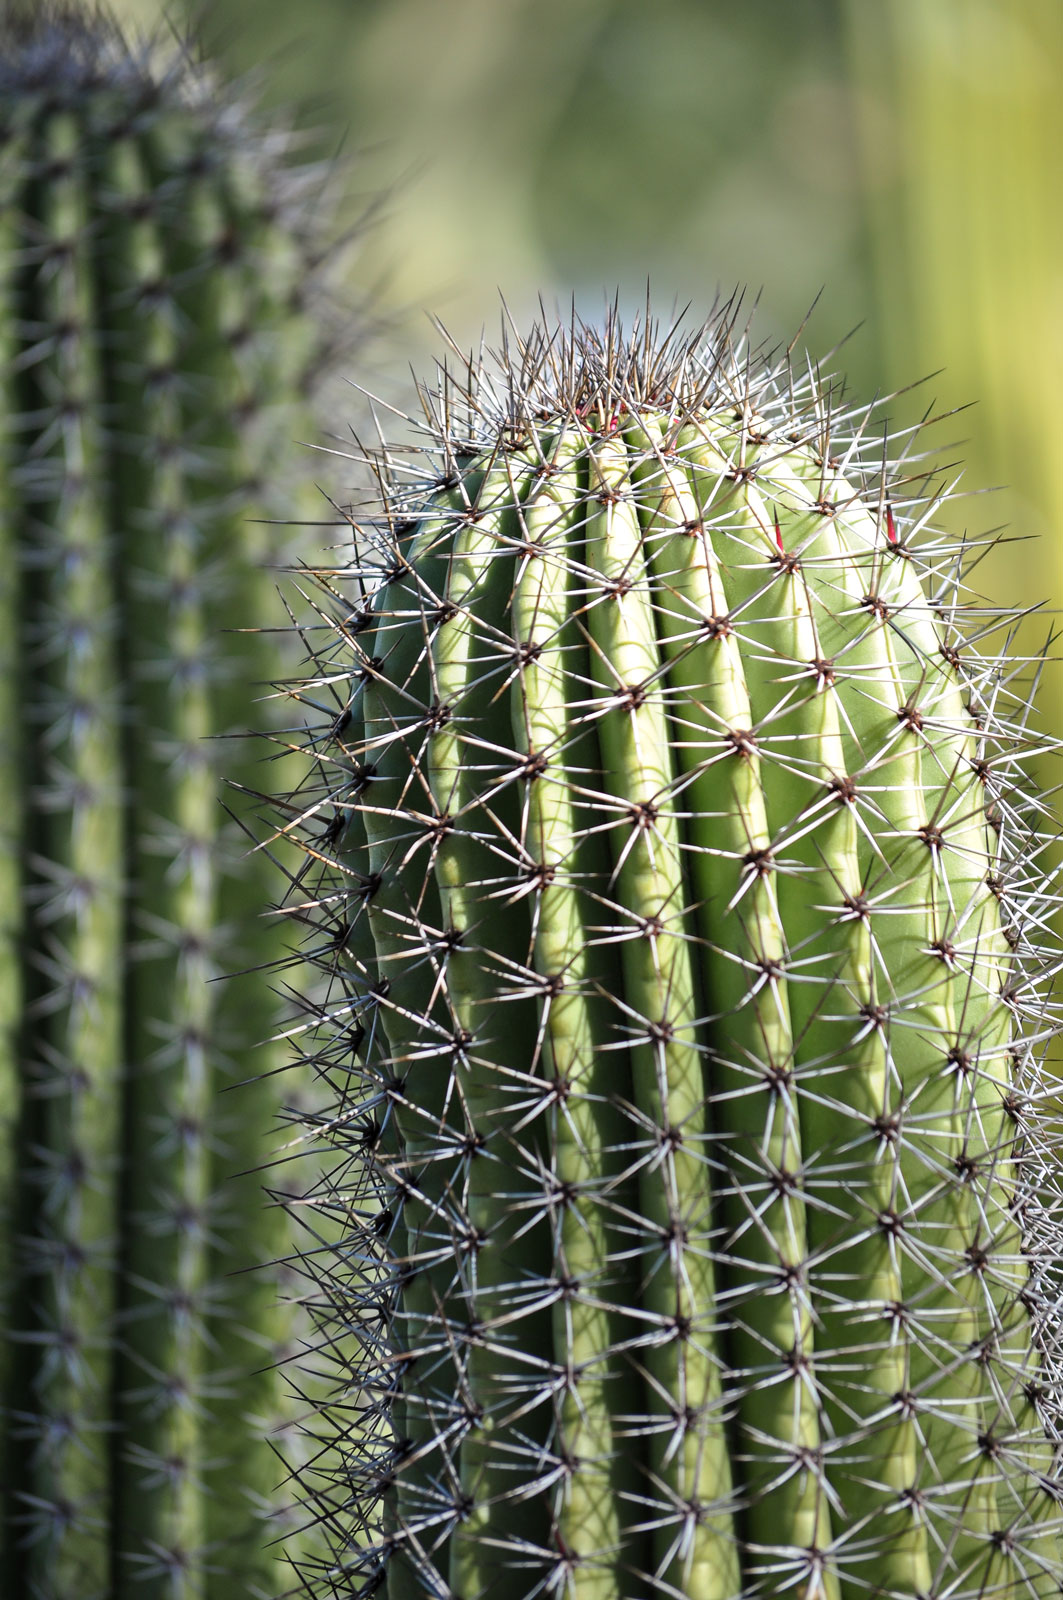 The top of an Organ Pipe cactus.